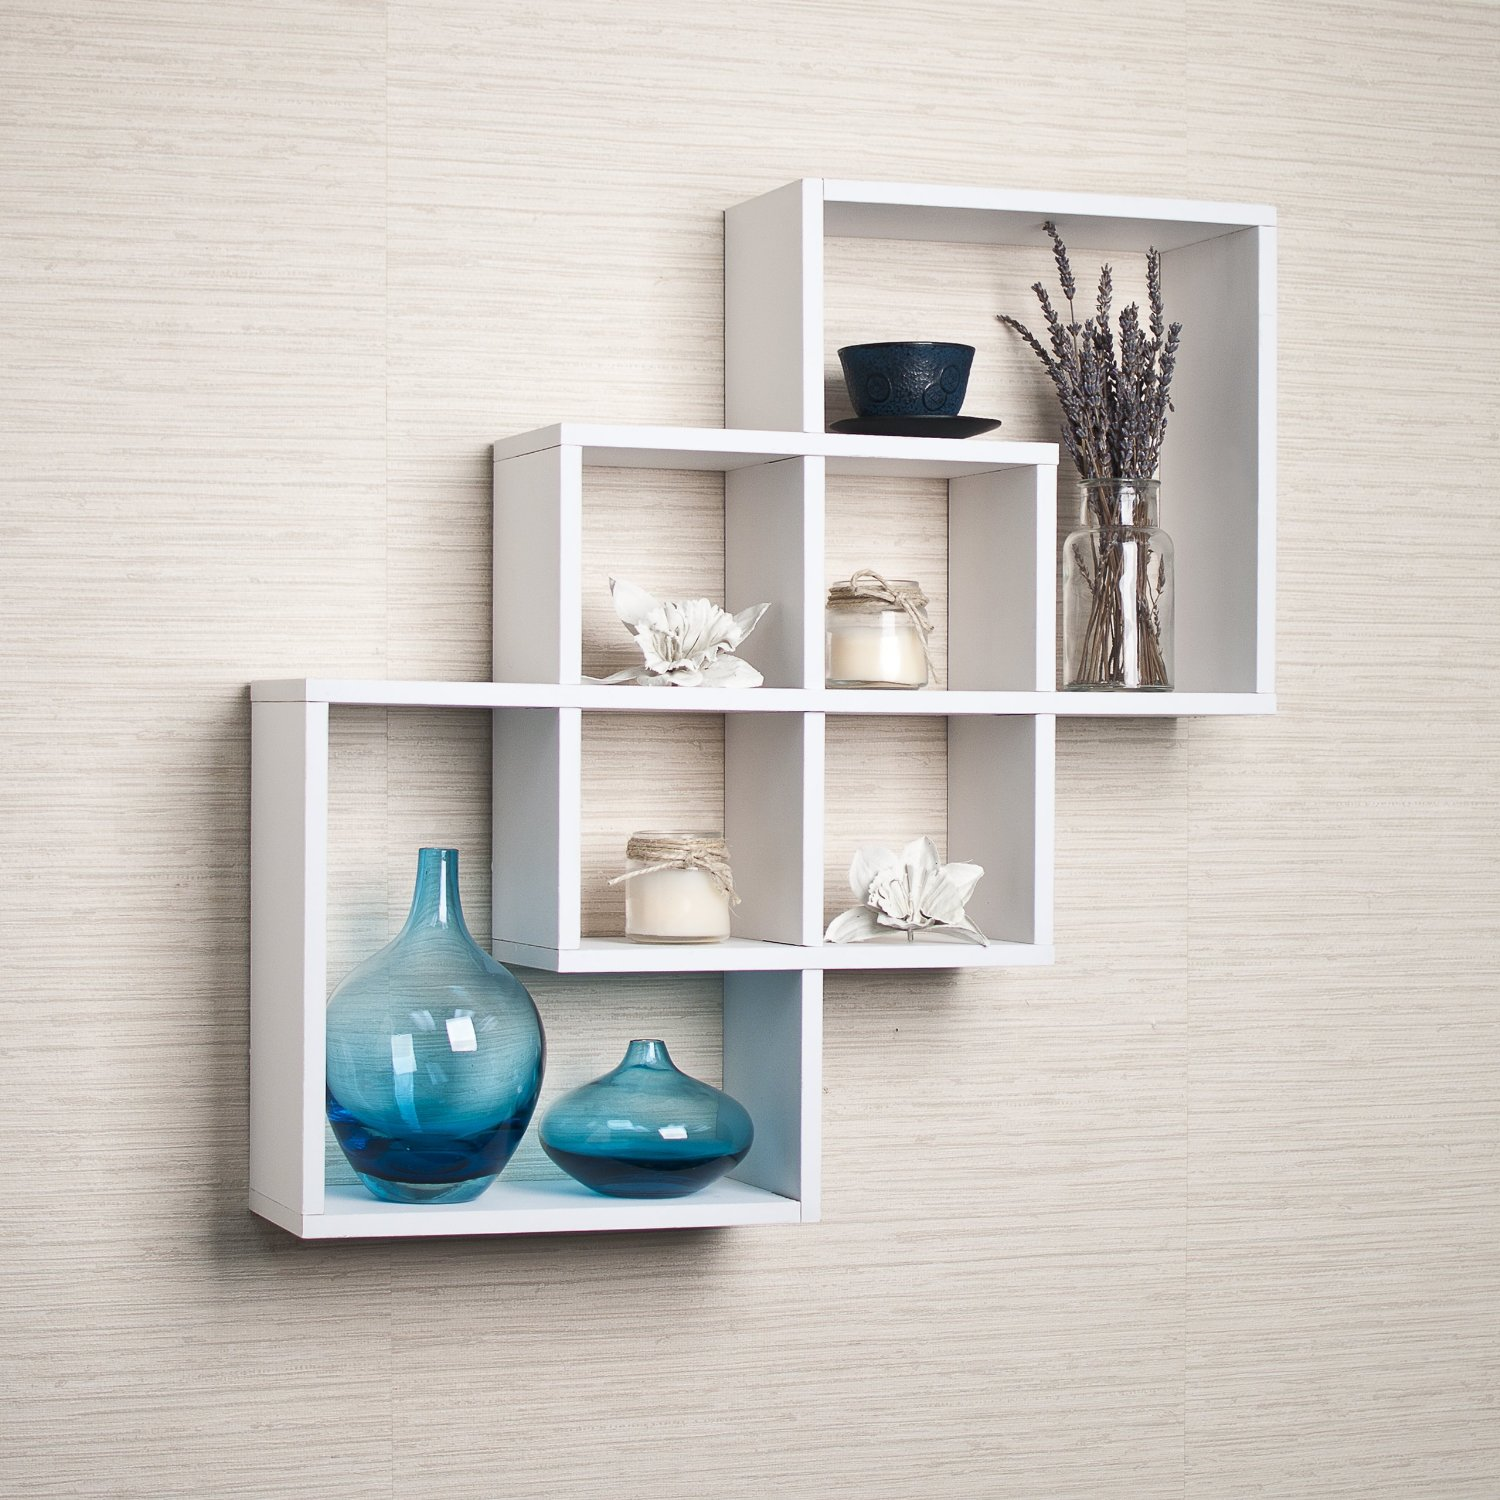 top white floating shelves for home interiors intersecting shelf box frame your adjustable metal brackets building wall mounted installing peel and stick floor tiles concrete